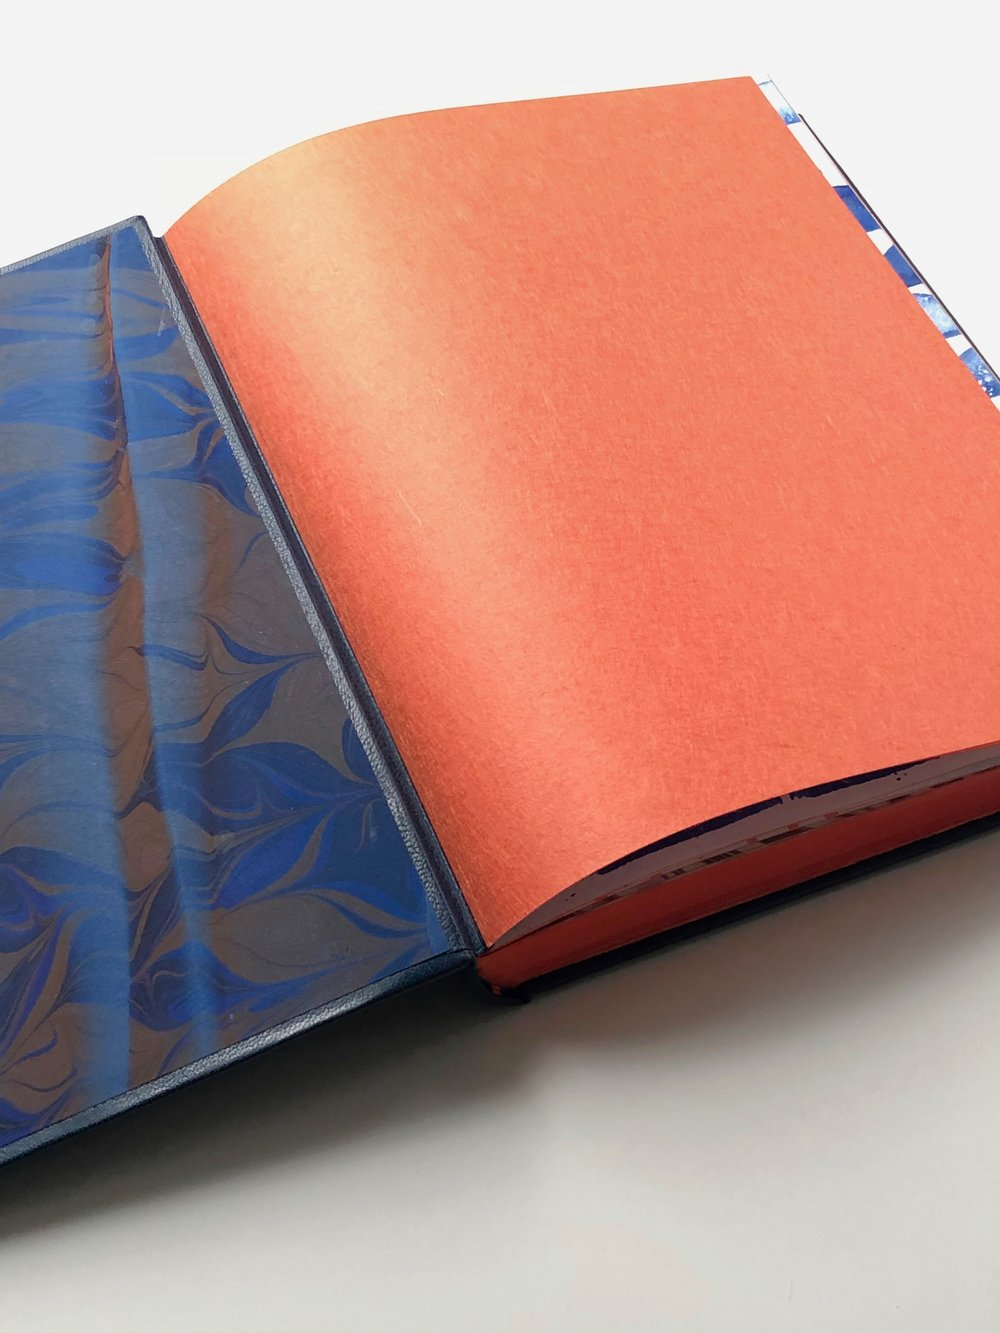 Hand-marbled pastdowns and Japanese paper flyleaf